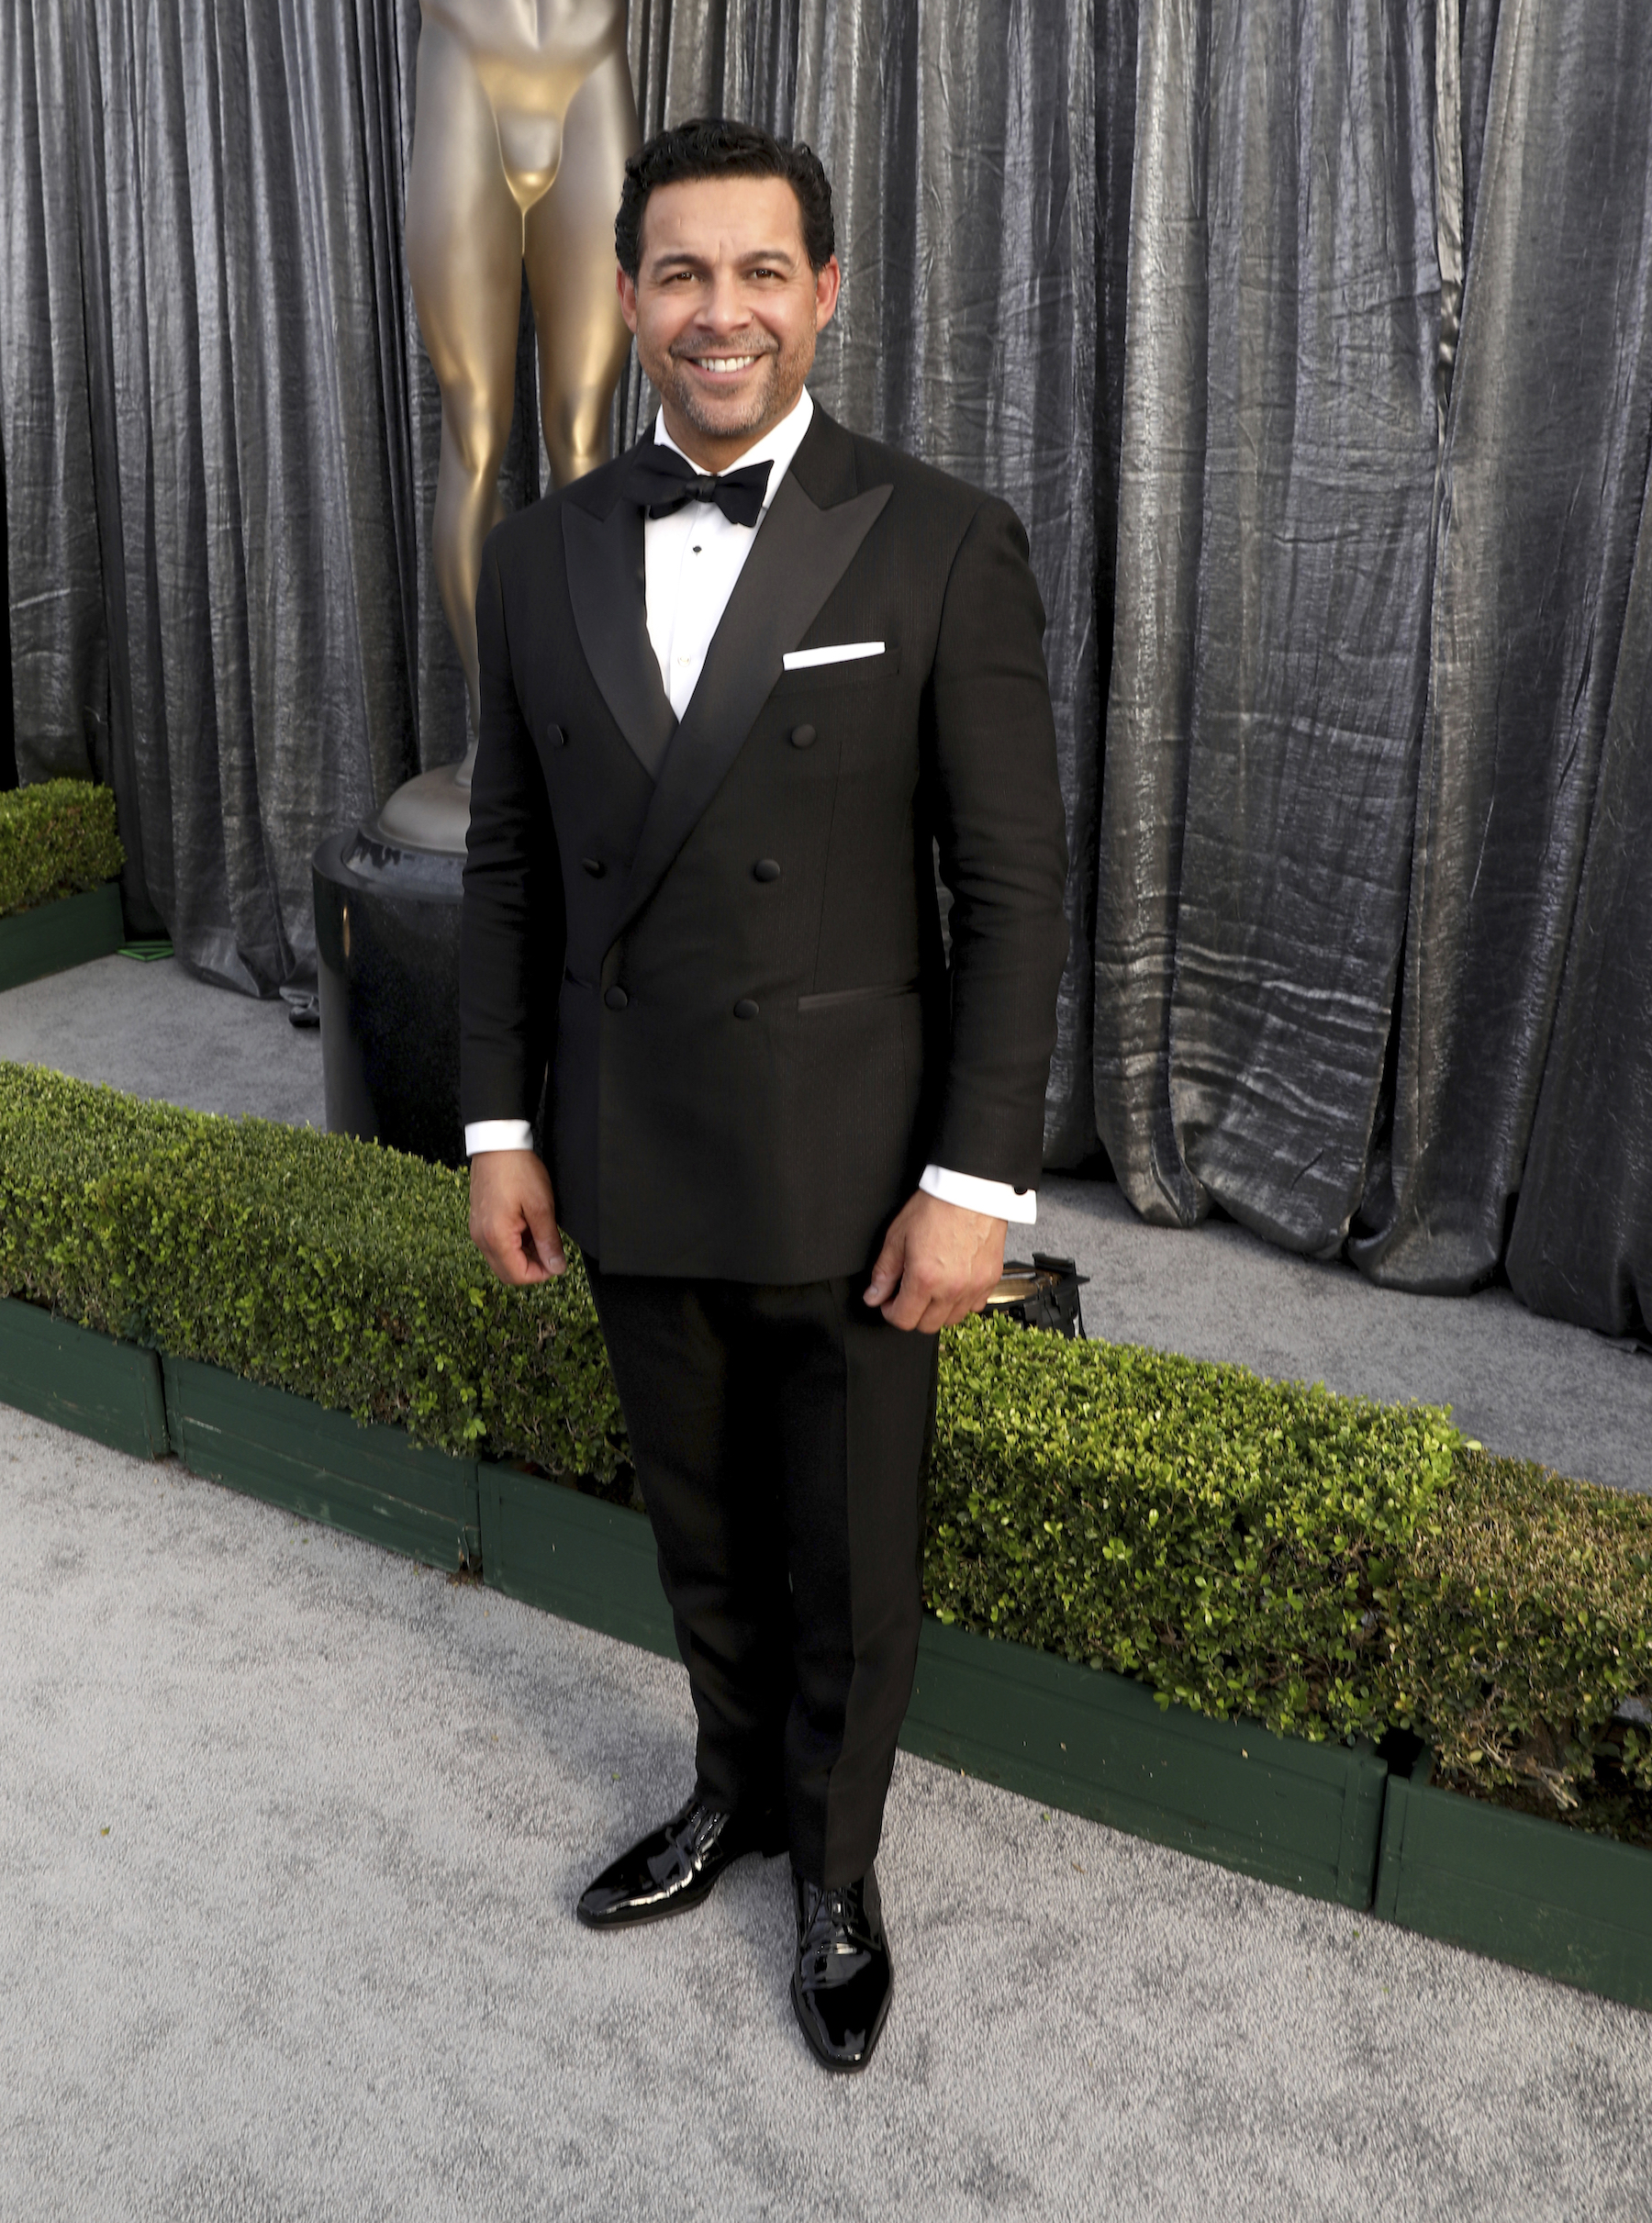 <div class='meta'><div class='origin-logo' data-origin='AP'></div><span class='caption-text' data-credit='Matt Sayles/Invision/AP'>Jon Huertas arrives at the 25th annual Screen Actors Guild Awards at the Shrine Auditorium & Expo Hall on Sunday, Jan. 27, 2019, in Los Angeles.</span></div>